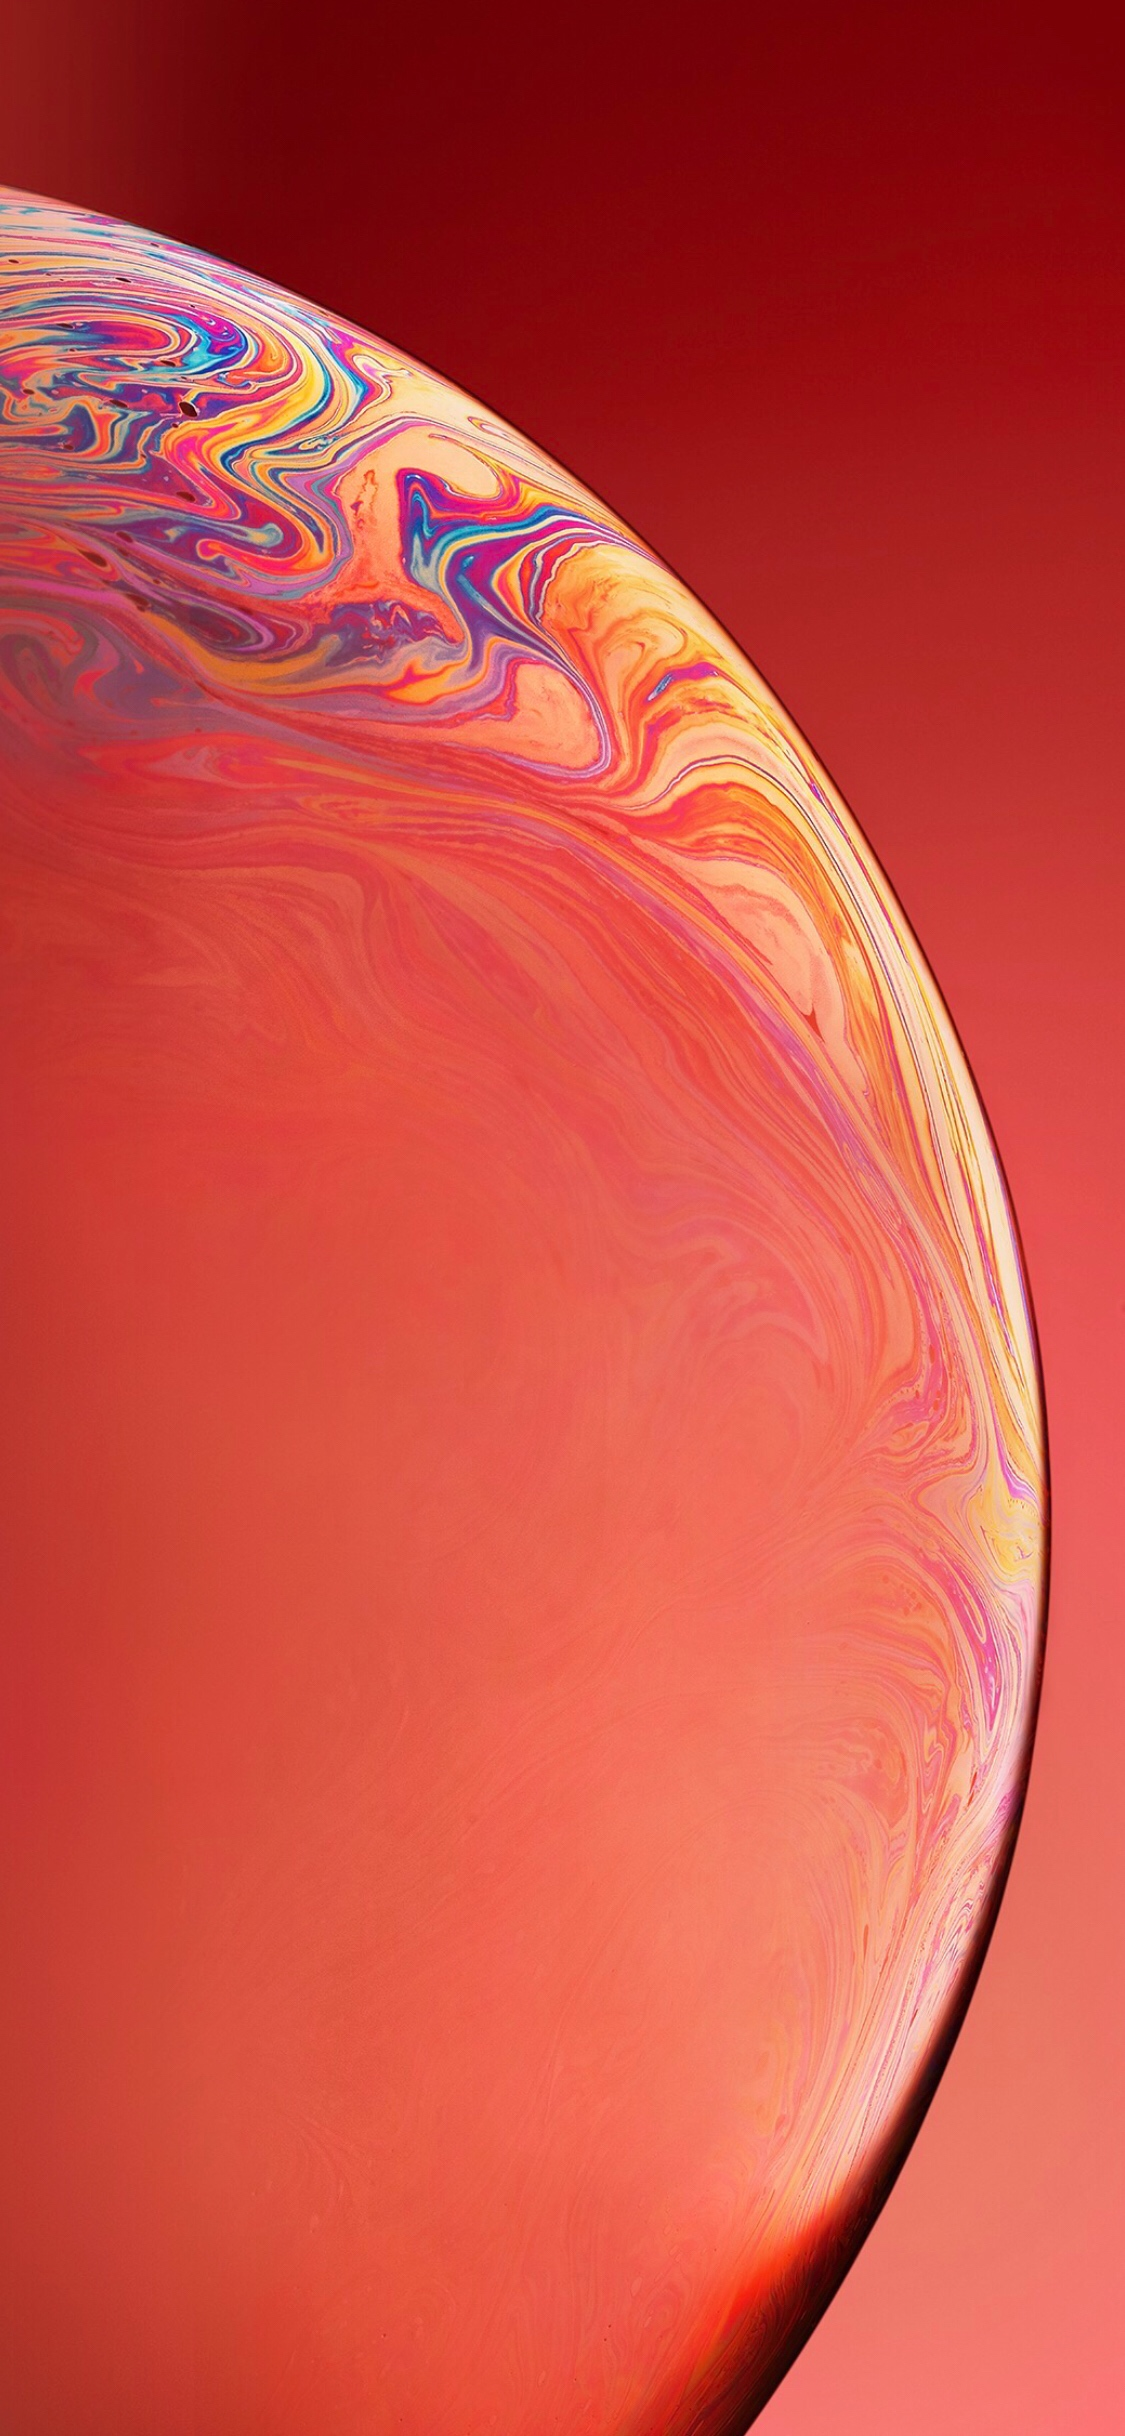 Wallpapers iPhone Xs iPhone Xs Max and iPhone Xr 1125x2436